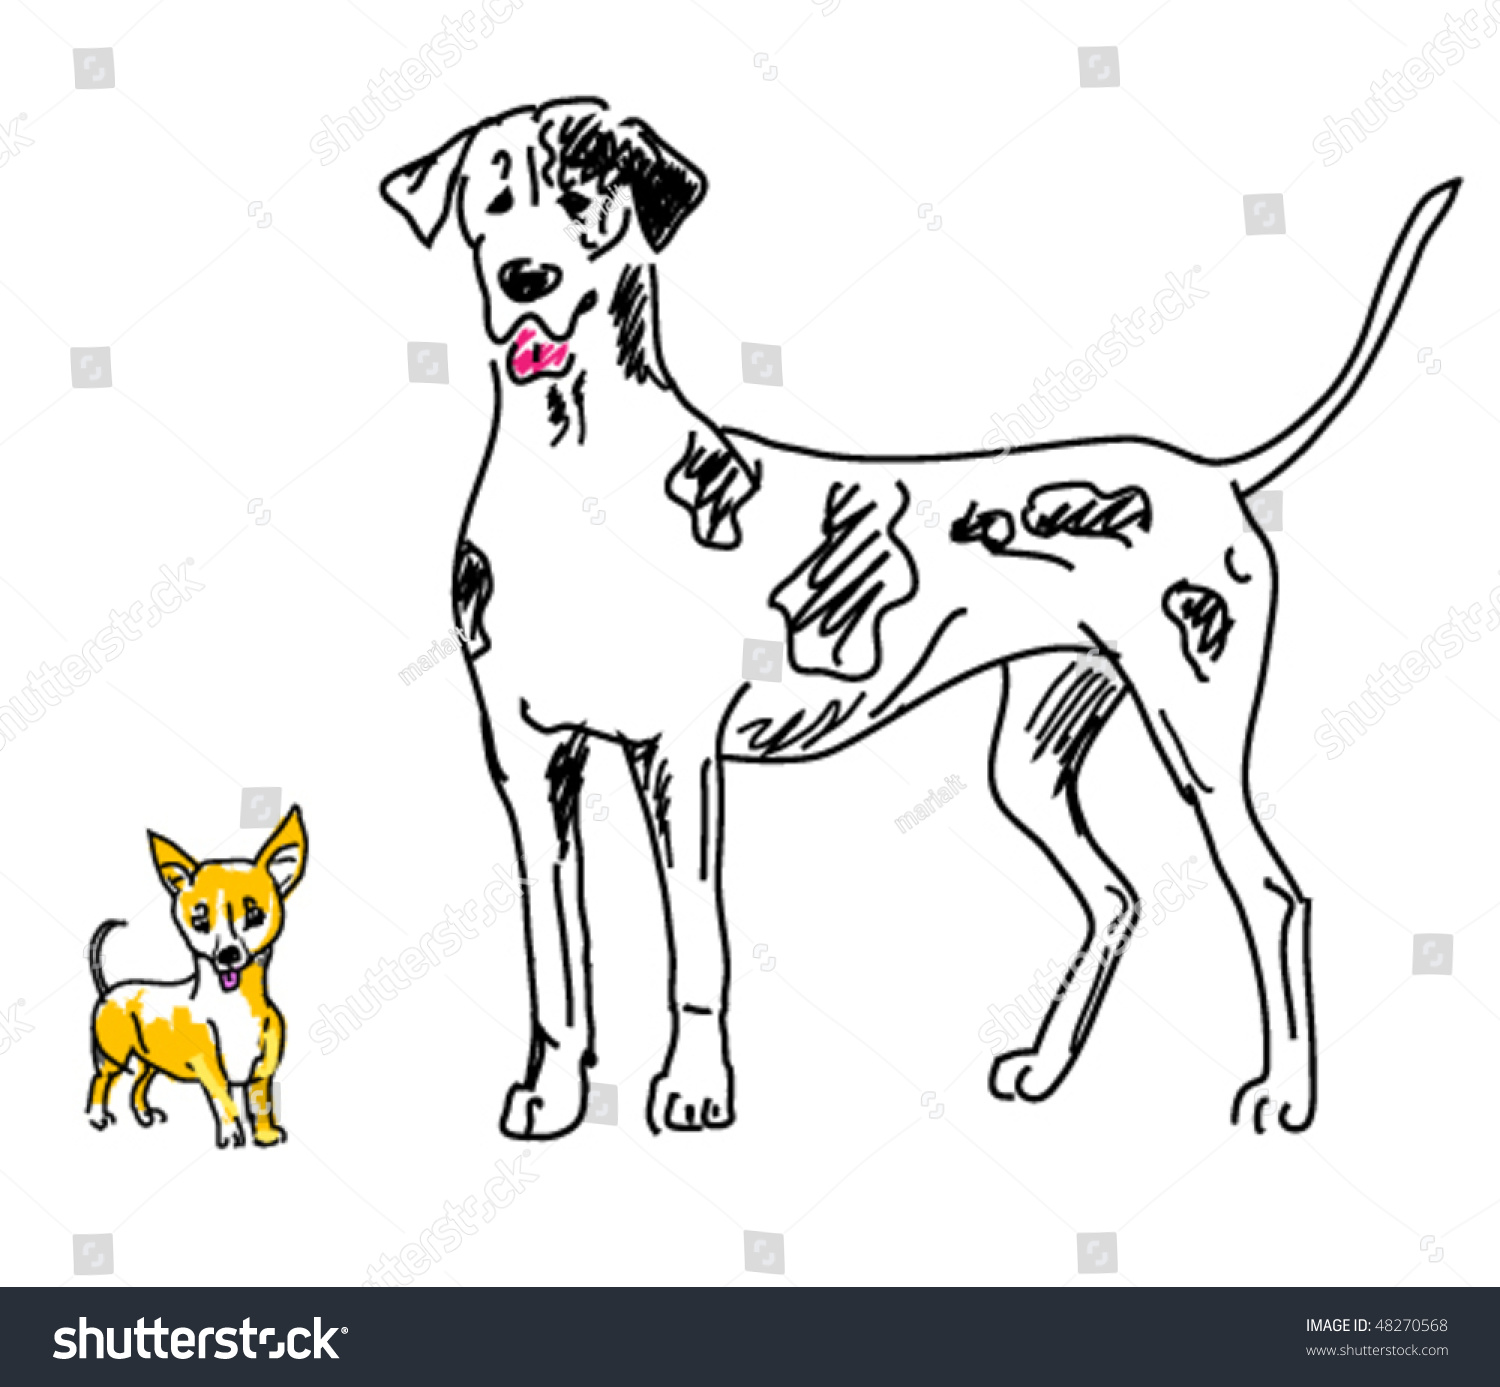 Pet clipart small pet. Dog drawing at getdrawings